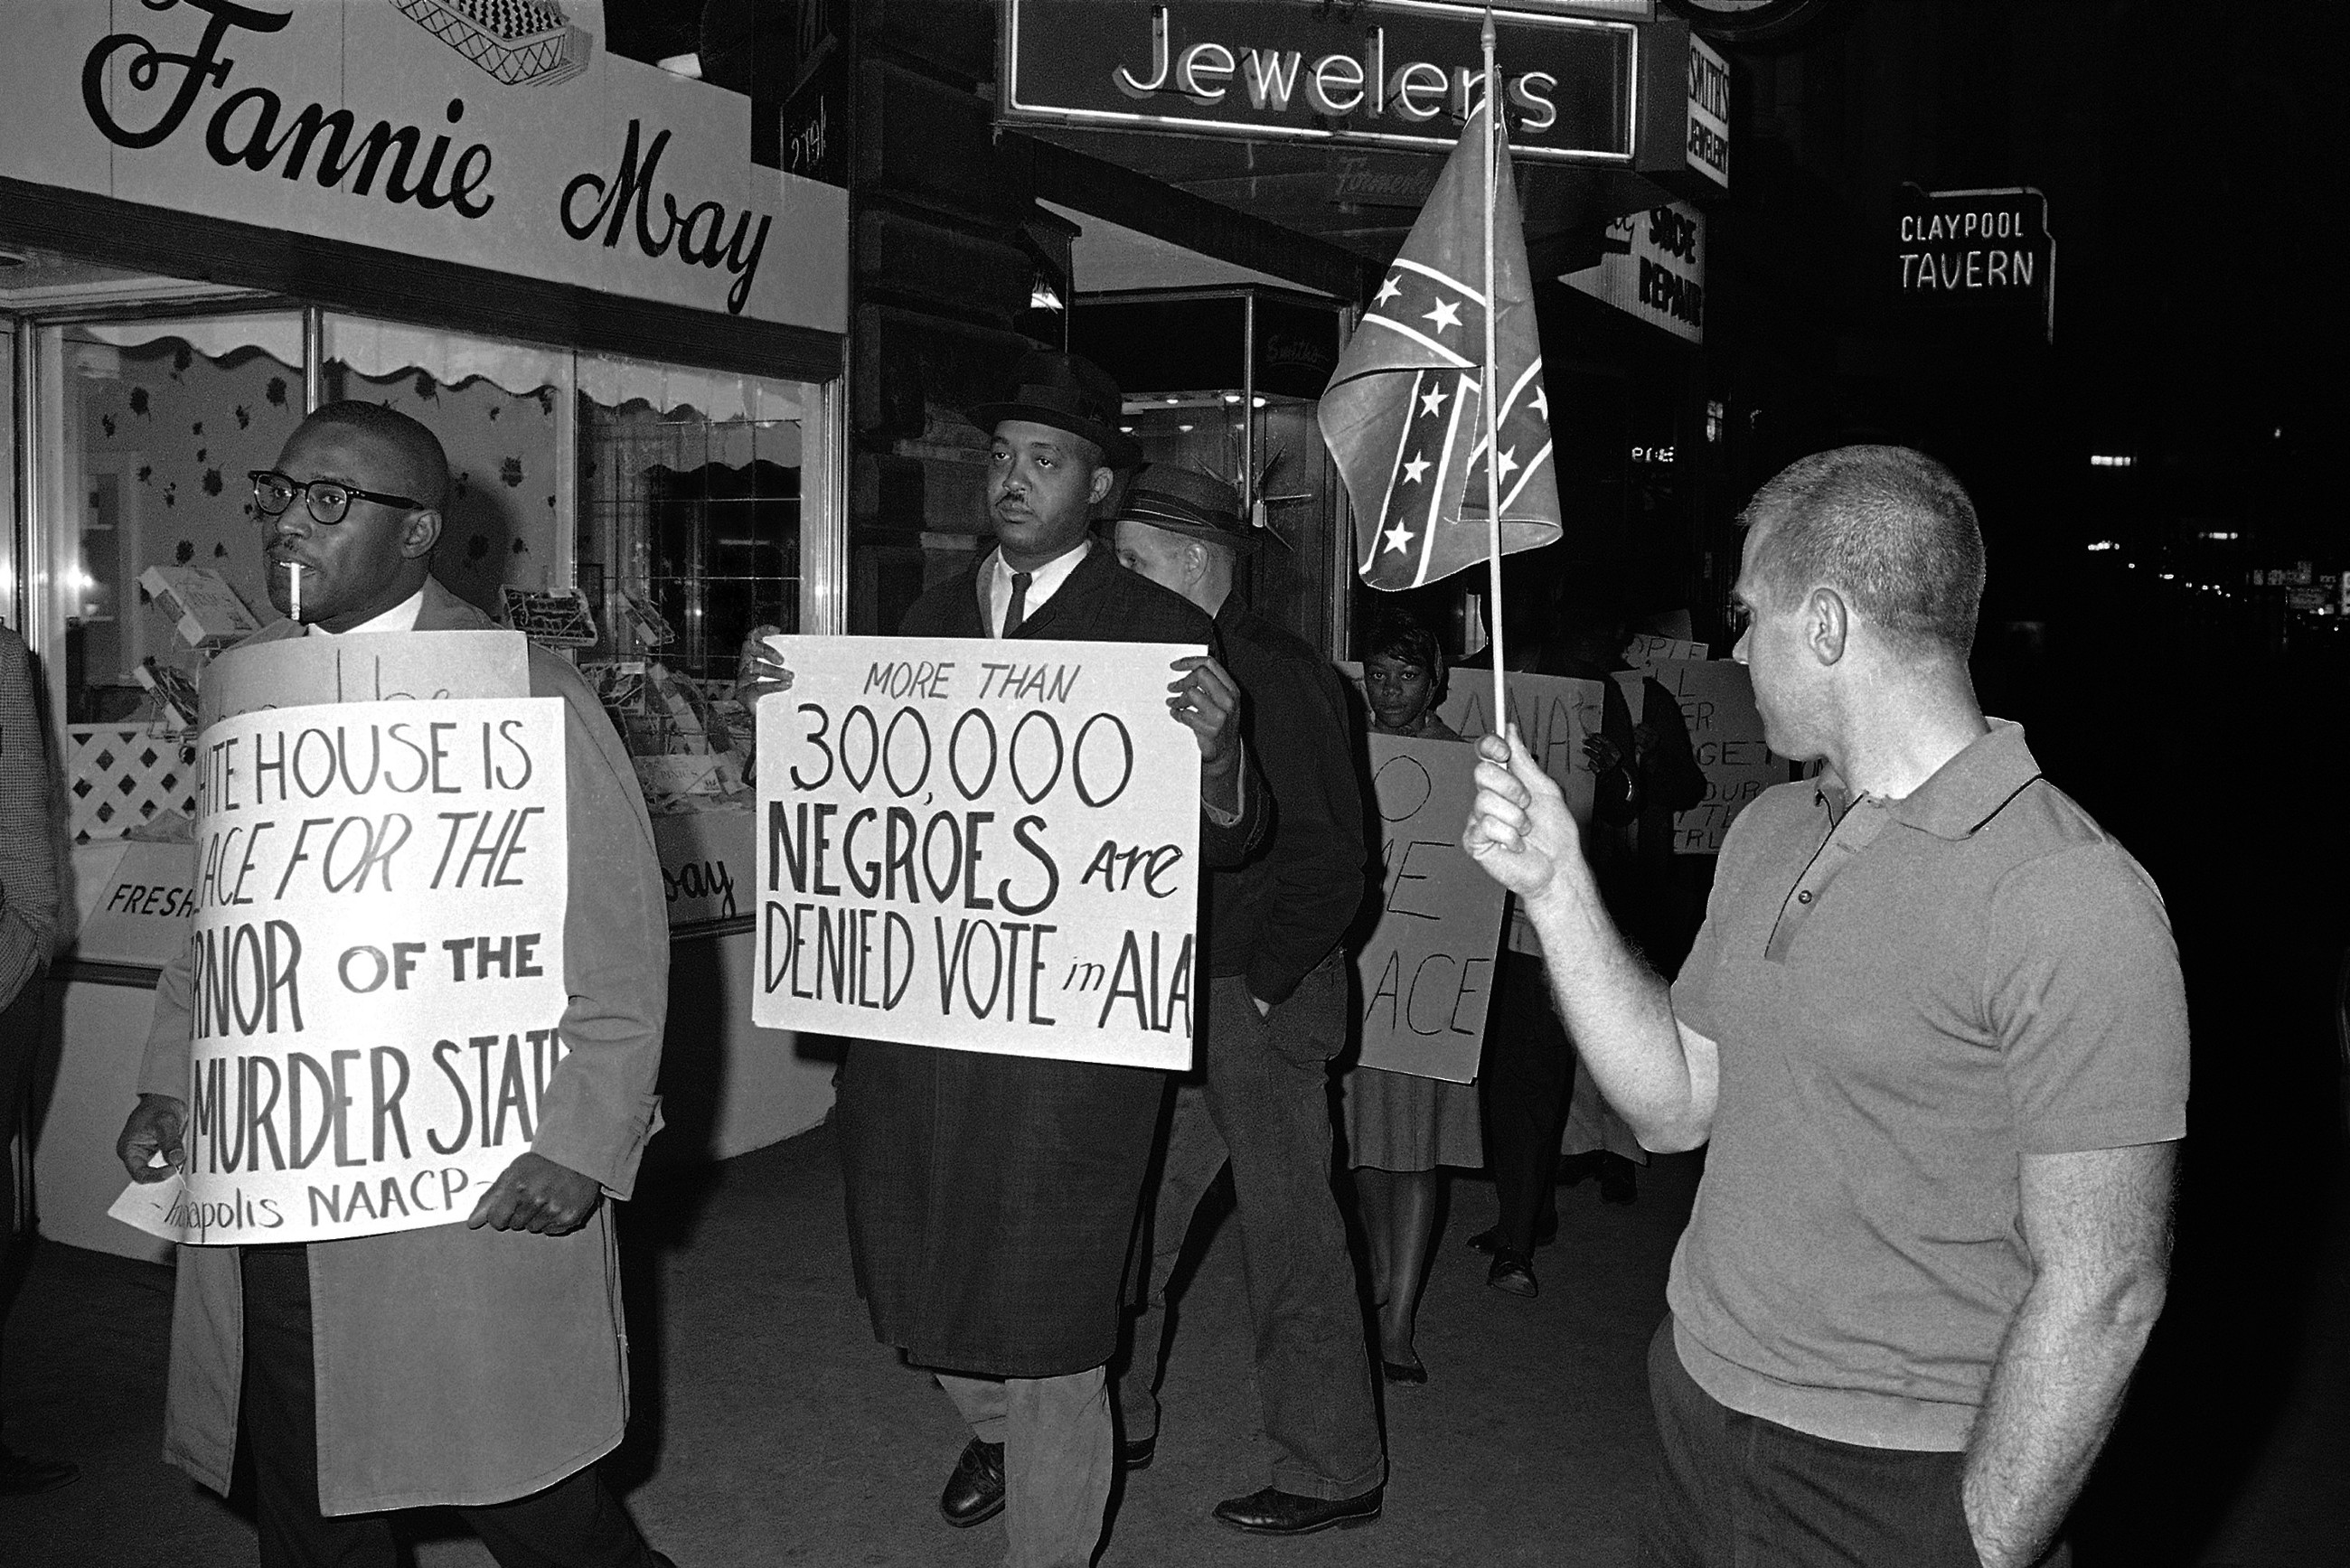 White politicians were coercing African Americans to vote long before civil rights